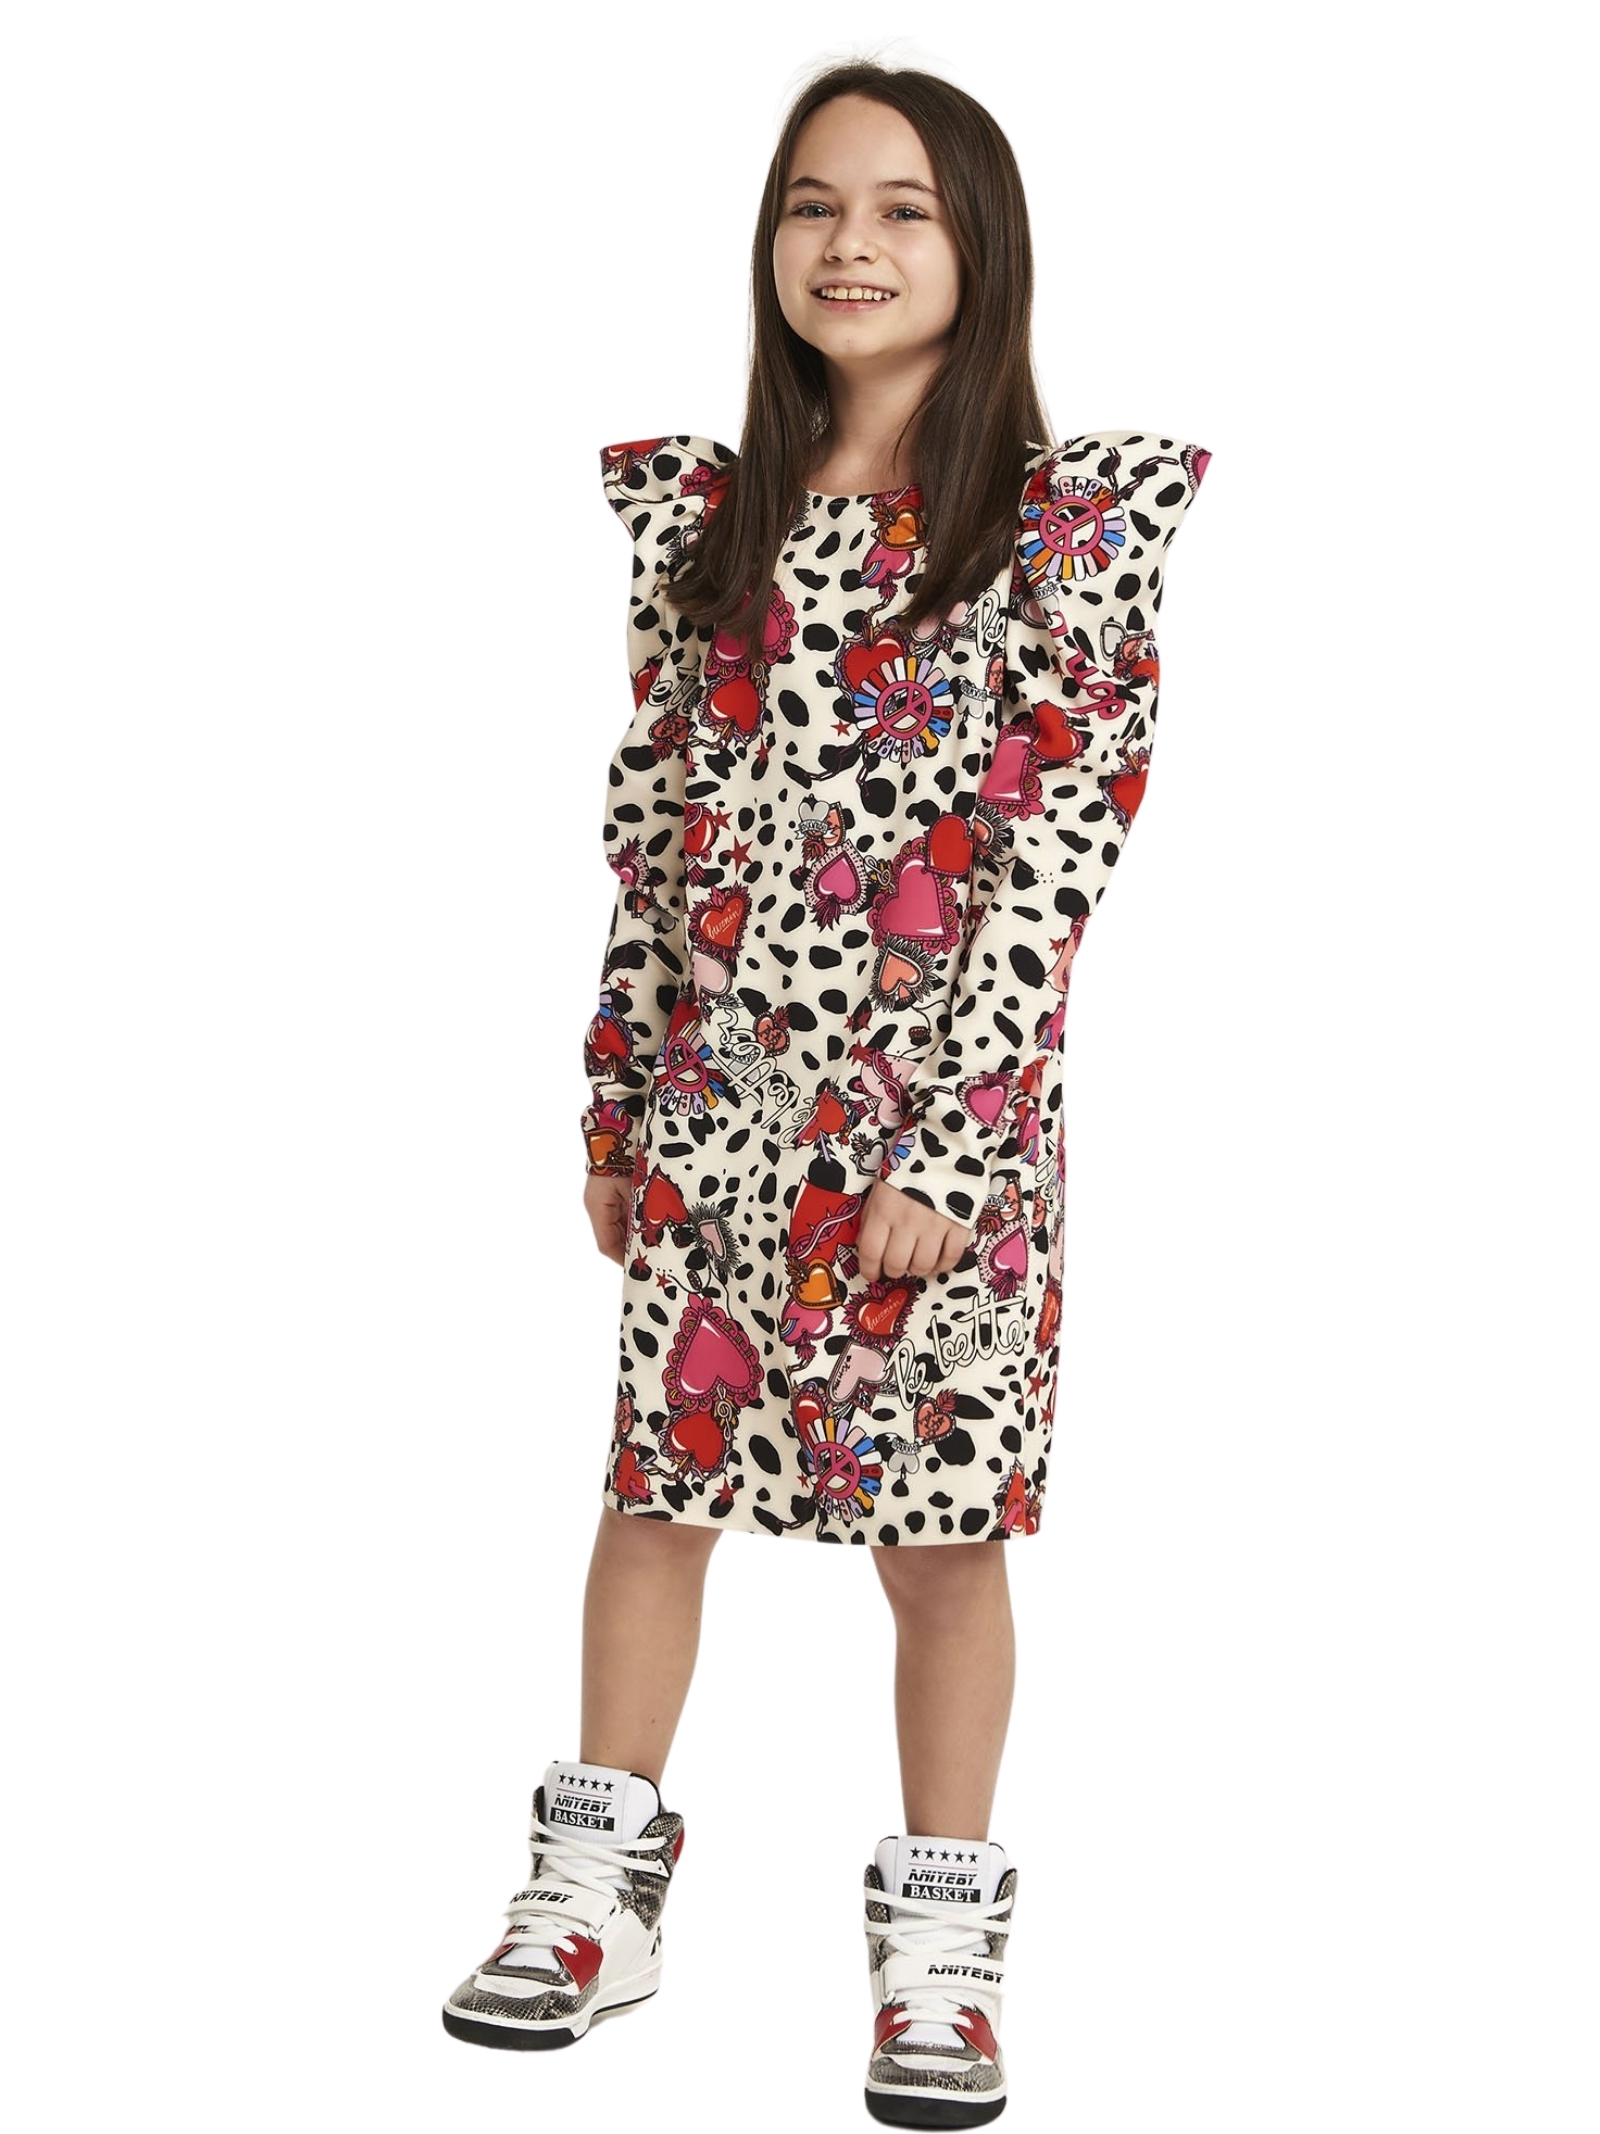 Rock dress for girls ANIYE BY GIRL | Clothes | 11120400092